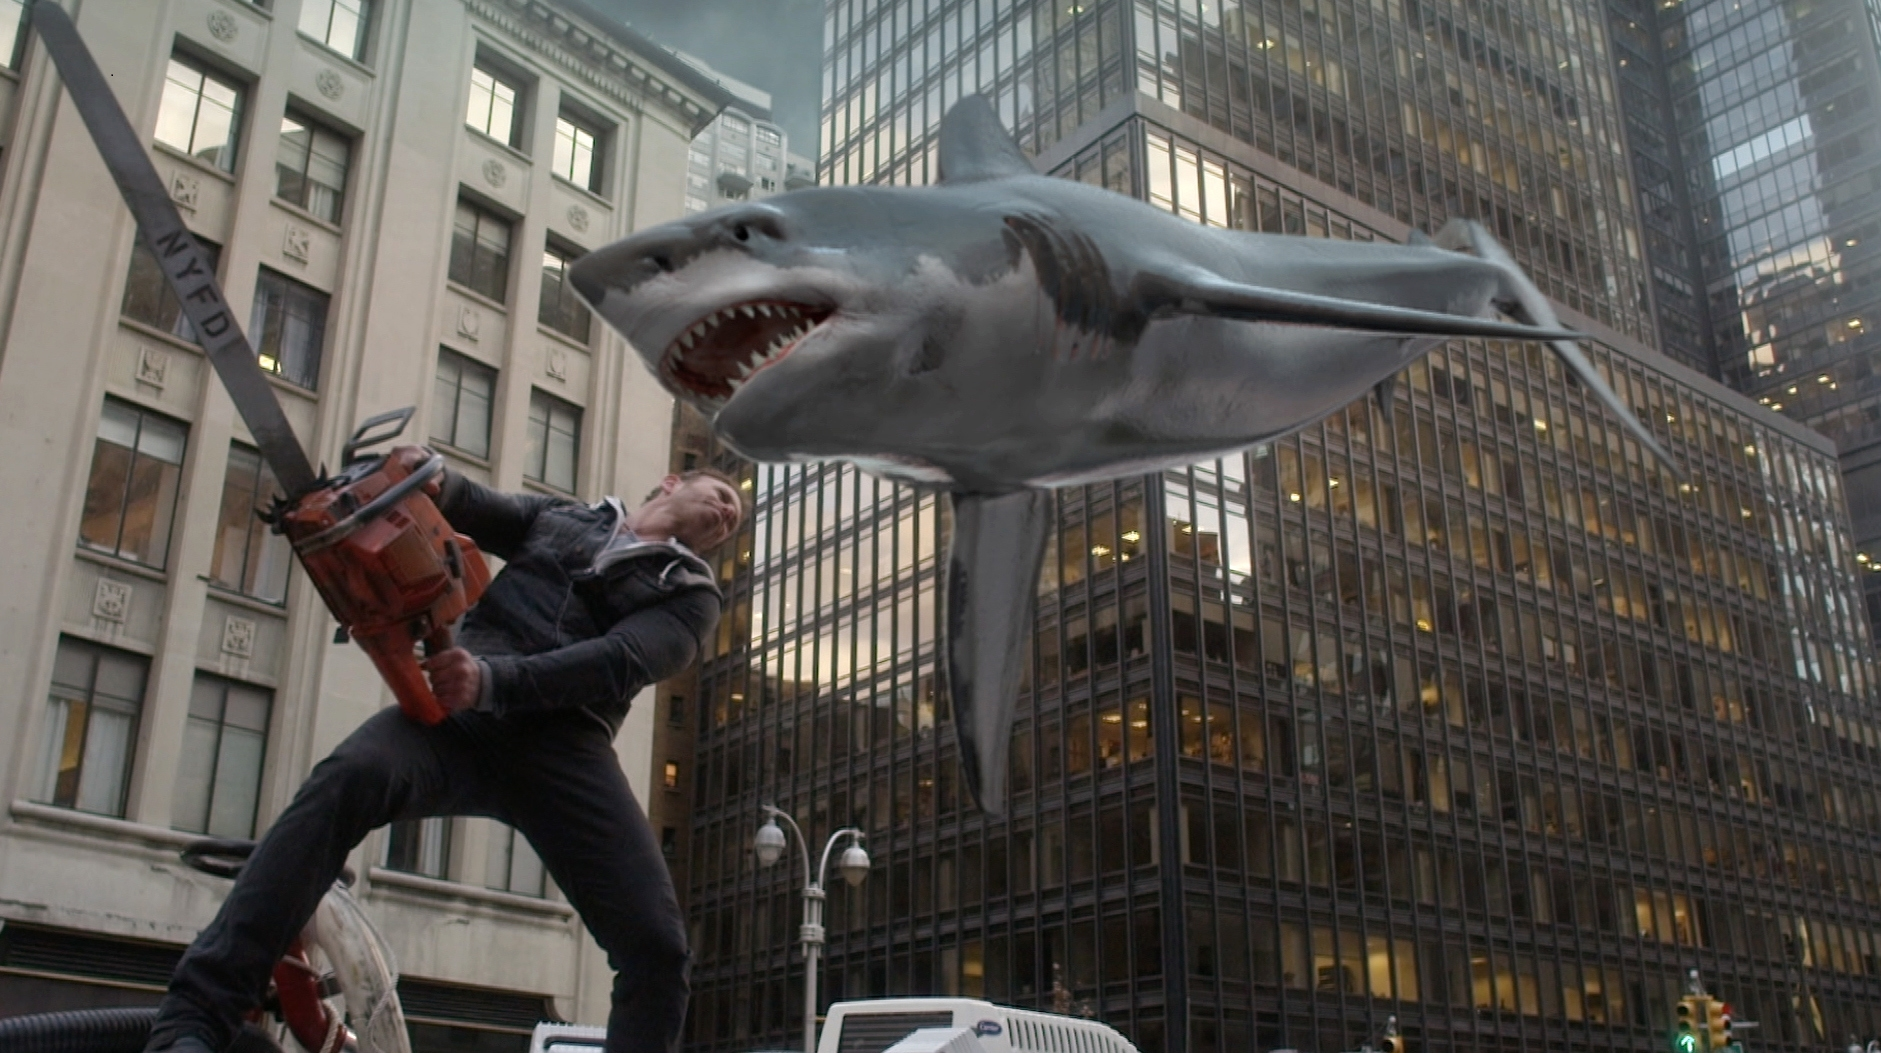 """Syfy brings back Ian Ziering as Fin Shepard in a scene that shows """"Sharknado 2: The Second One"""" will be as campy as the original."""